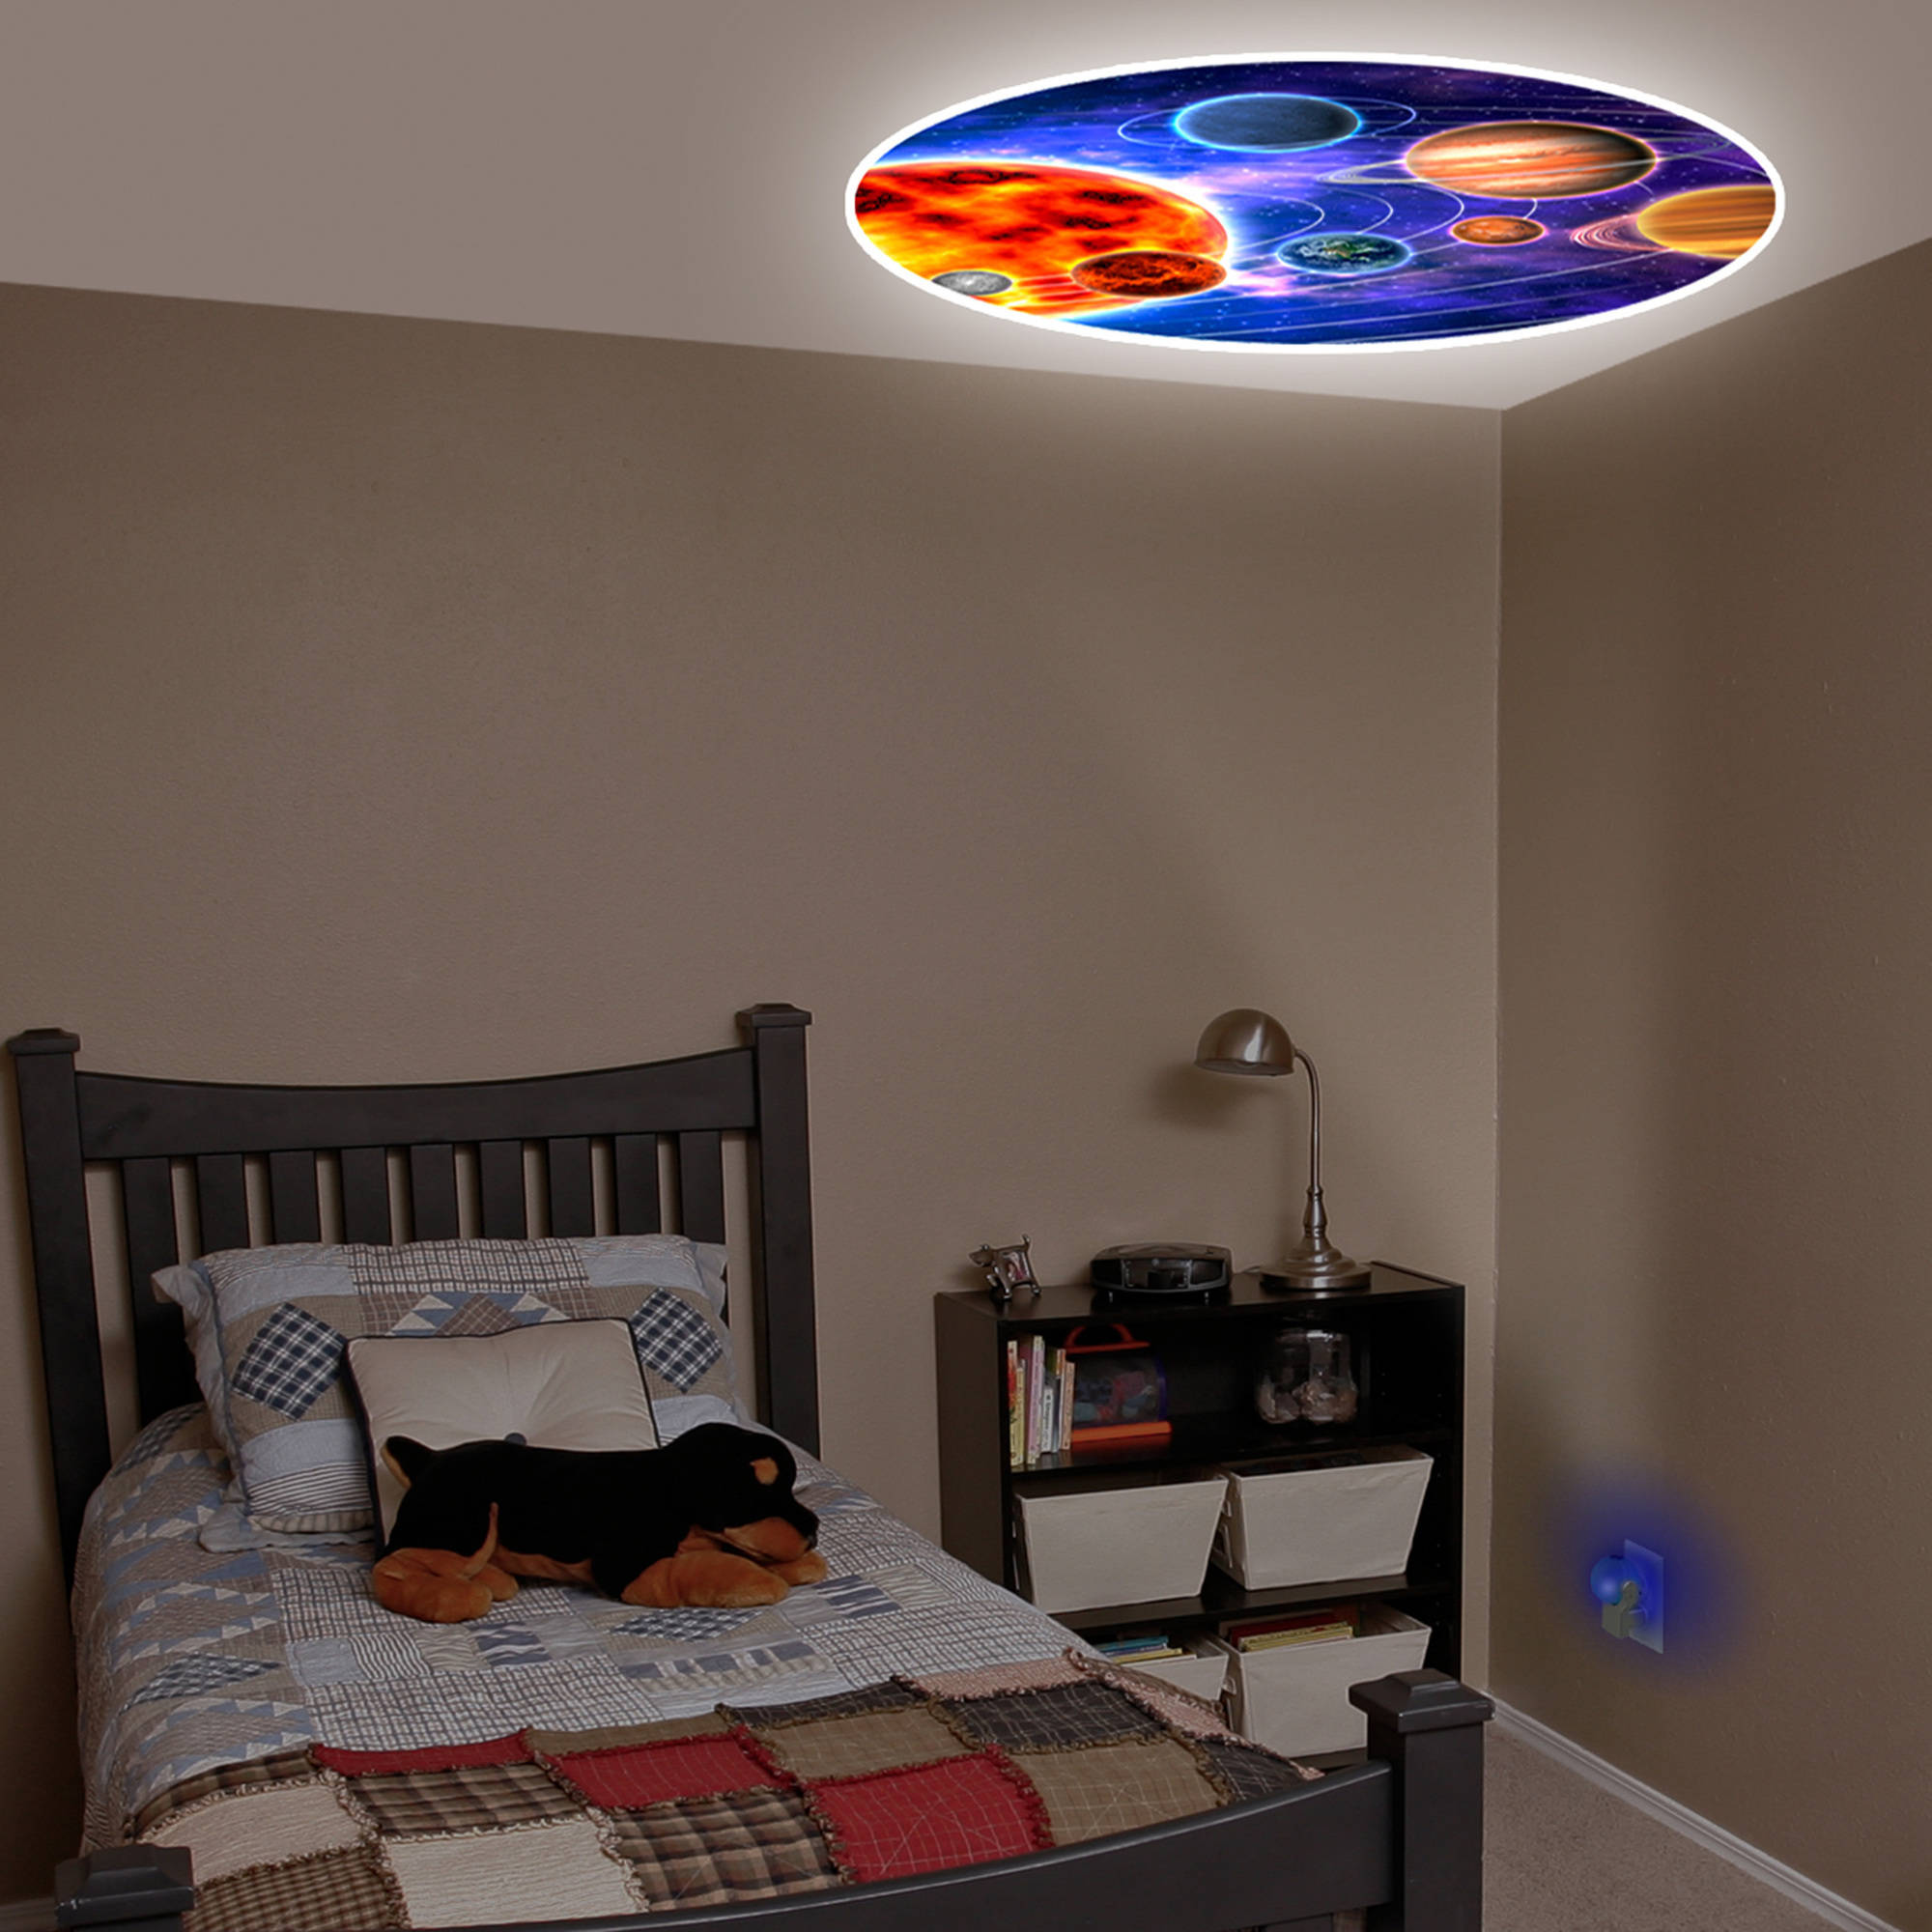 Projectables Night Light LED Projection Planet Design Plastic